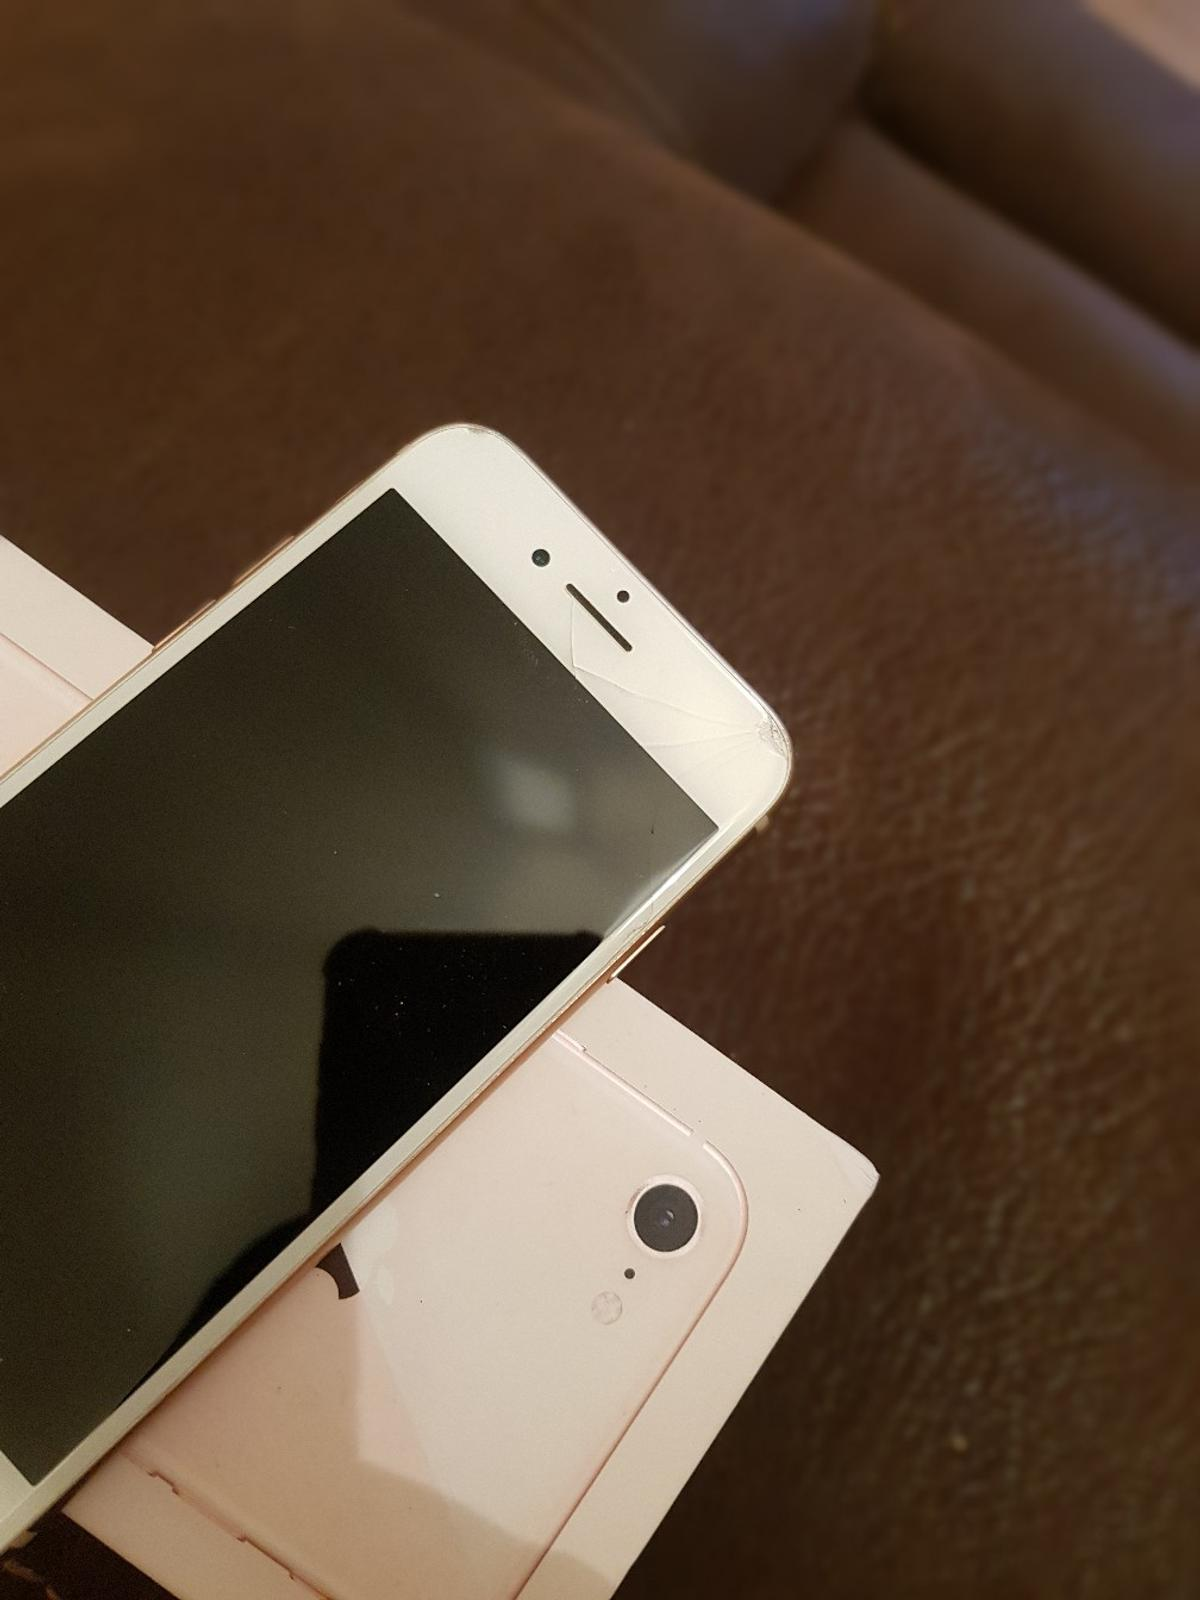 iphone 8 64gb in white and gold works on 02 and ee comes boxed with charger and earphone adapter...the phone has a small crack at top right of screen apart from that it is in excellent condition please see pics.